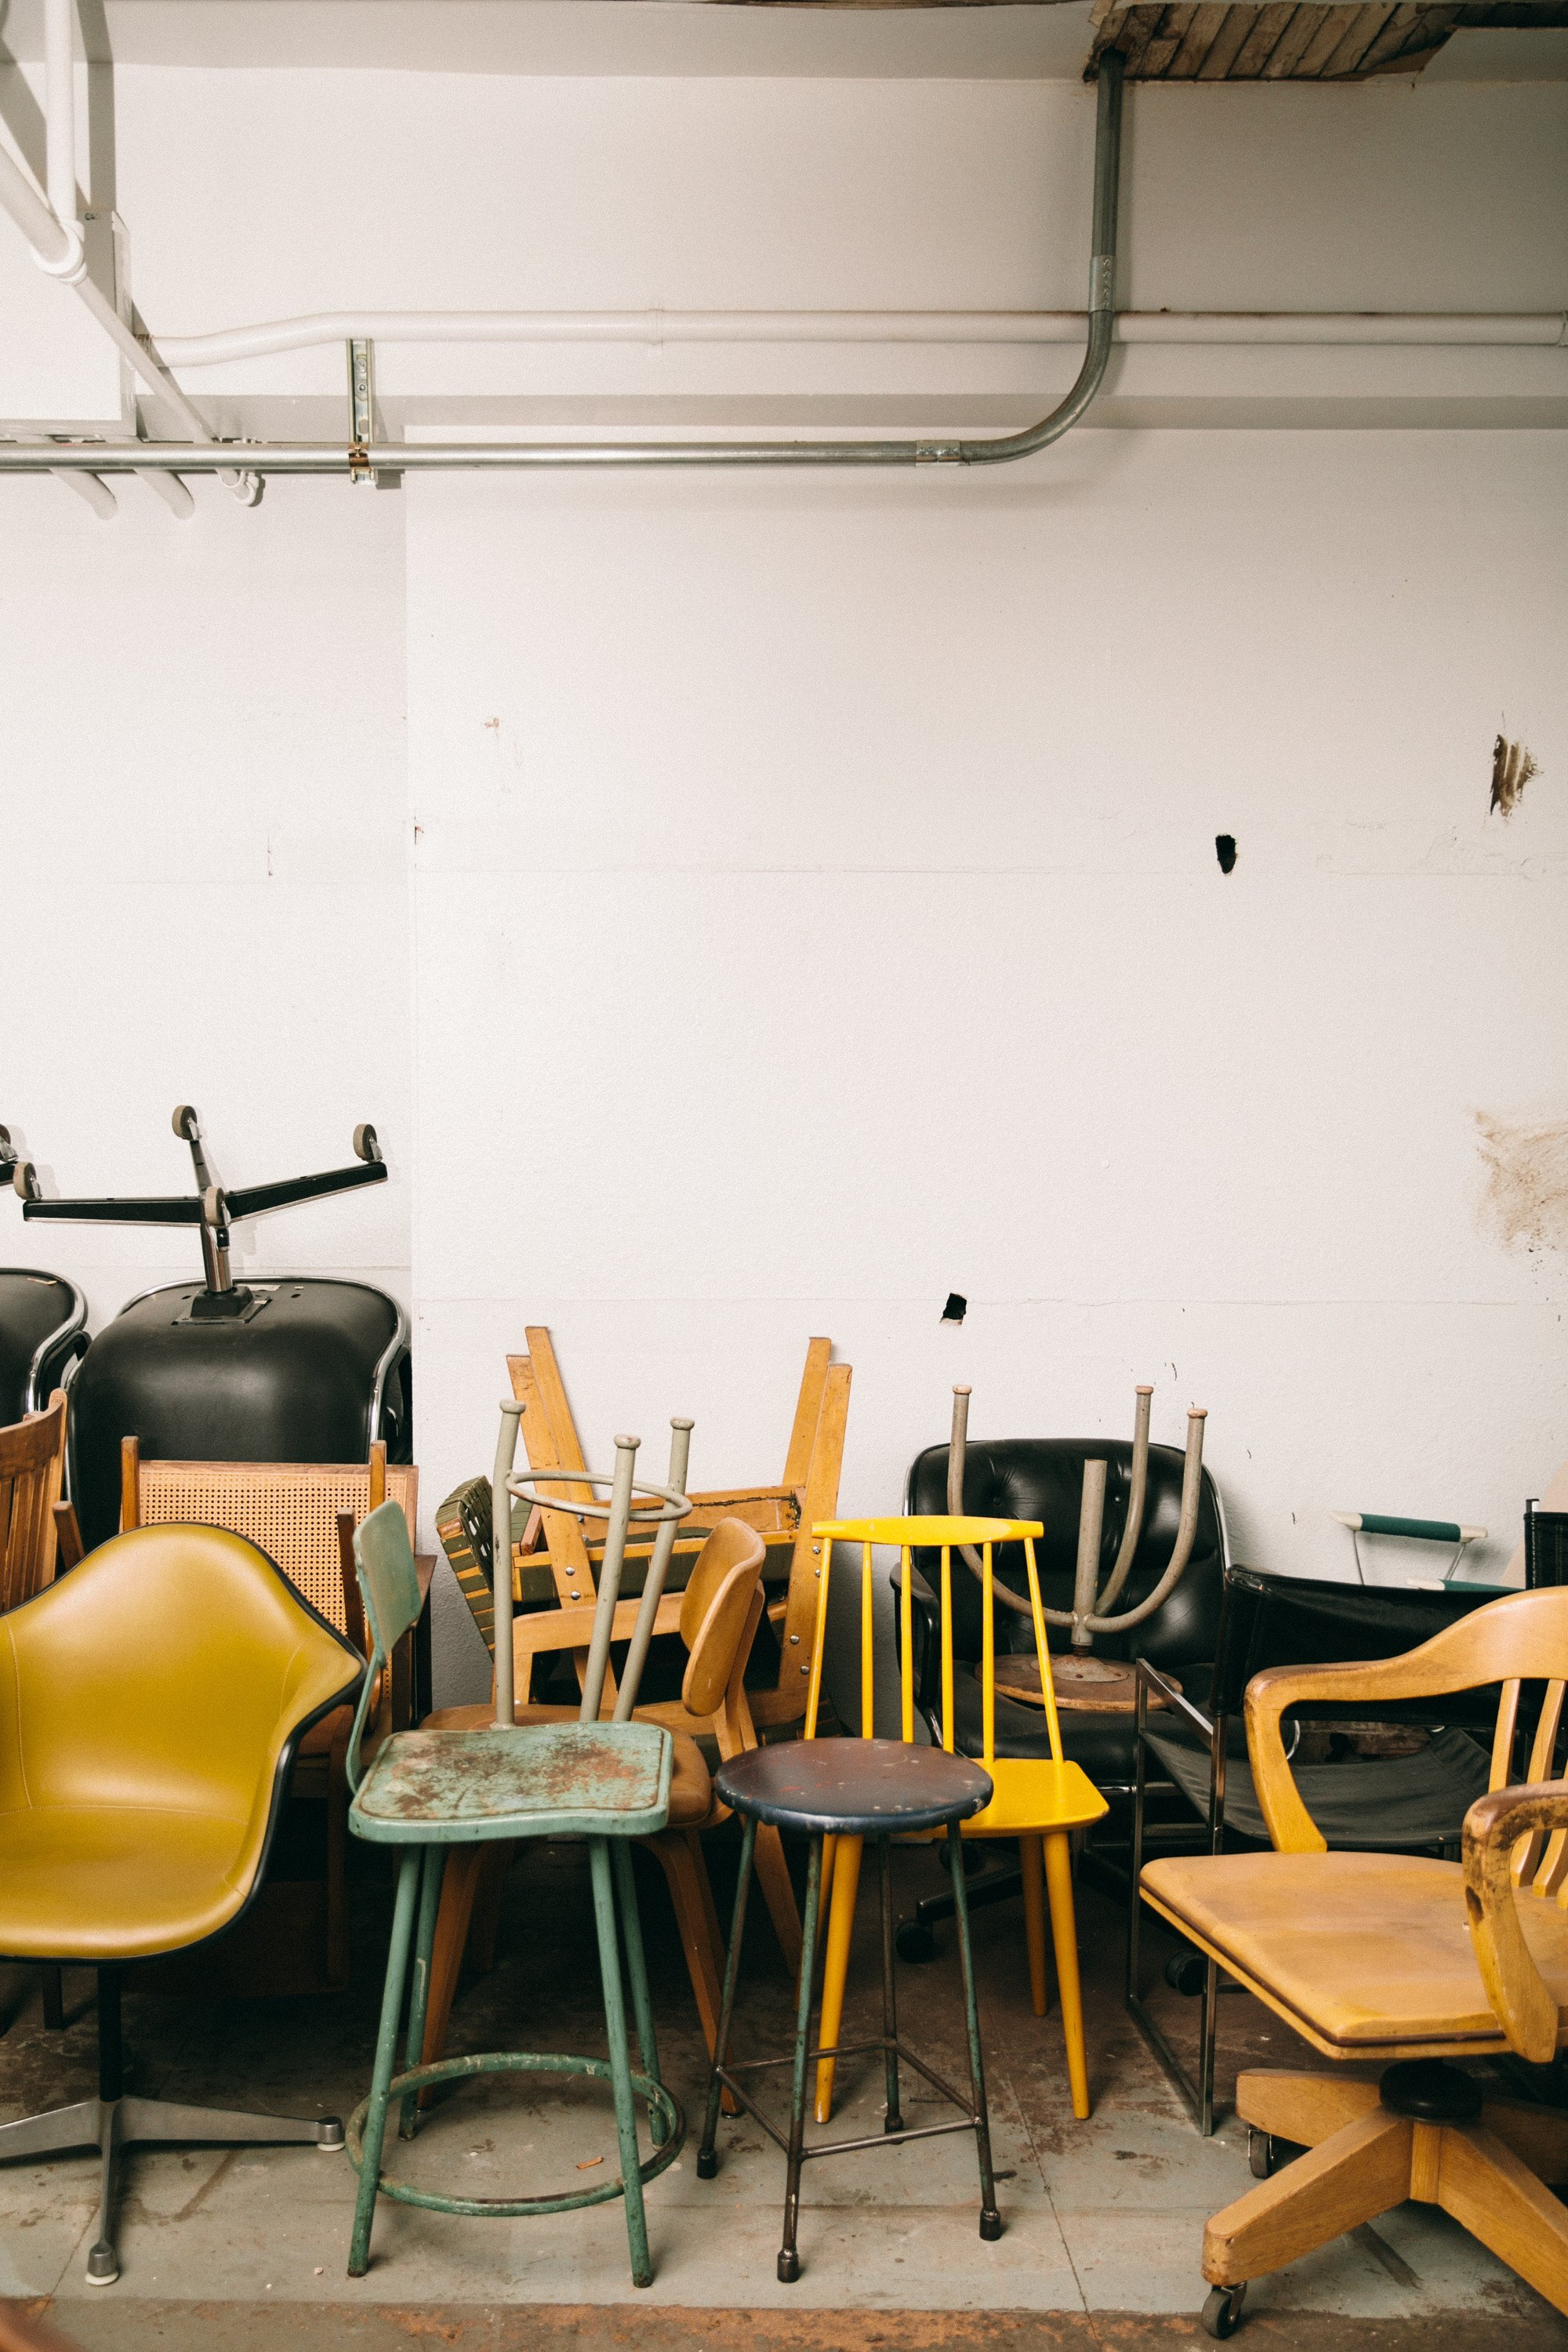 Schoolhouse Style - Inside the factory of this modern industrial lighting and home decor company.